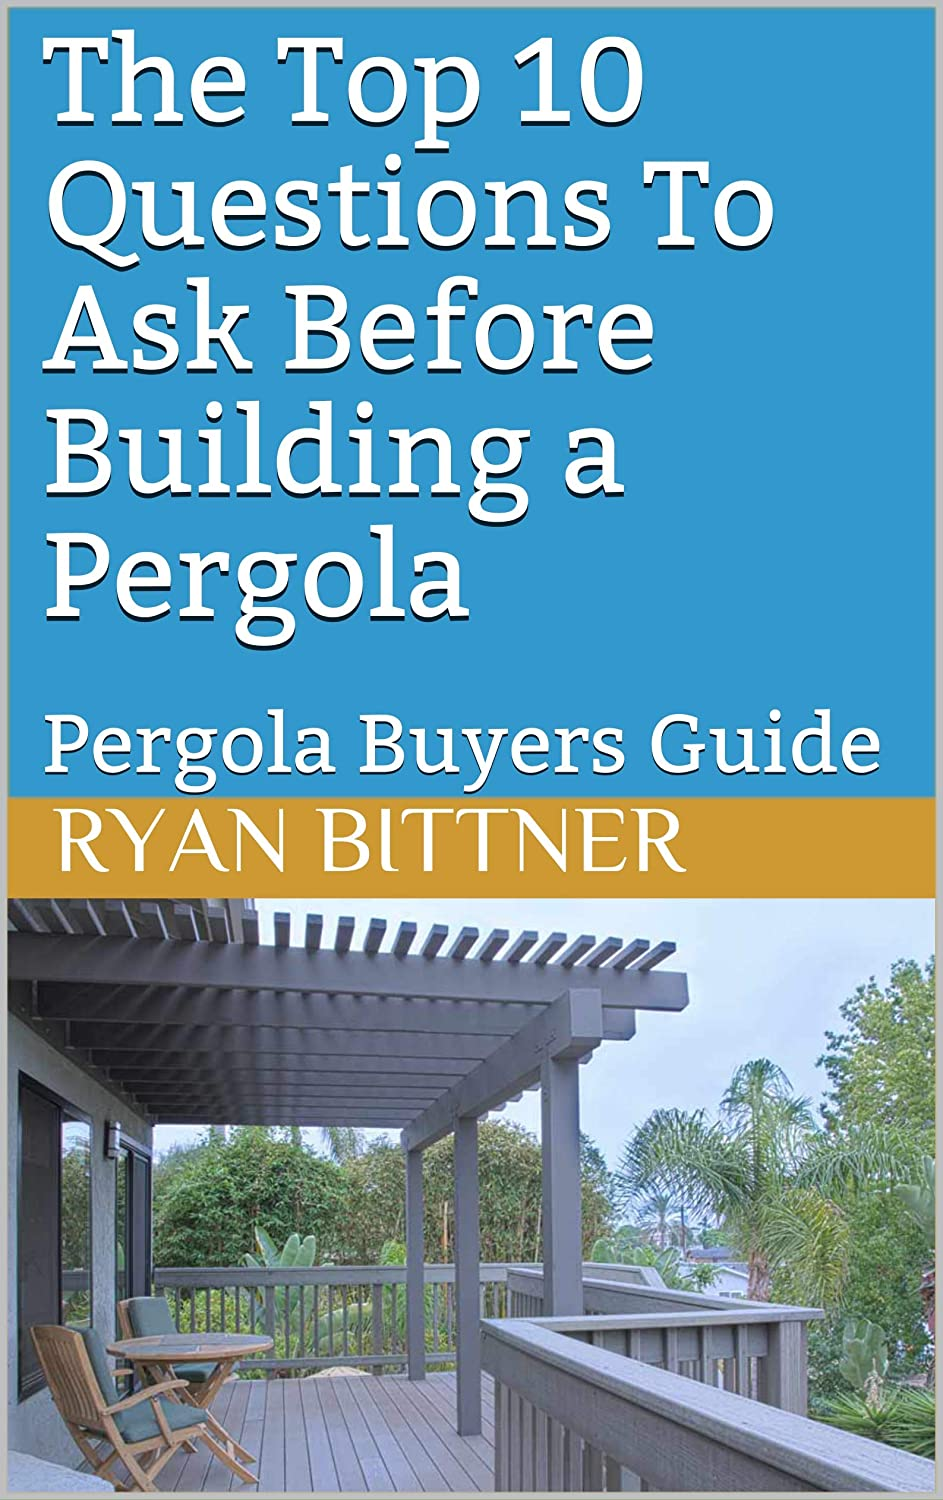 The Top 10 Questions To Ask Before Building a Pergola: Pergola Buyers Guide (Pergolas Book 1) (English Edition) eBook: Bittner, Ryan: Amazon.es: Tienda Kindle